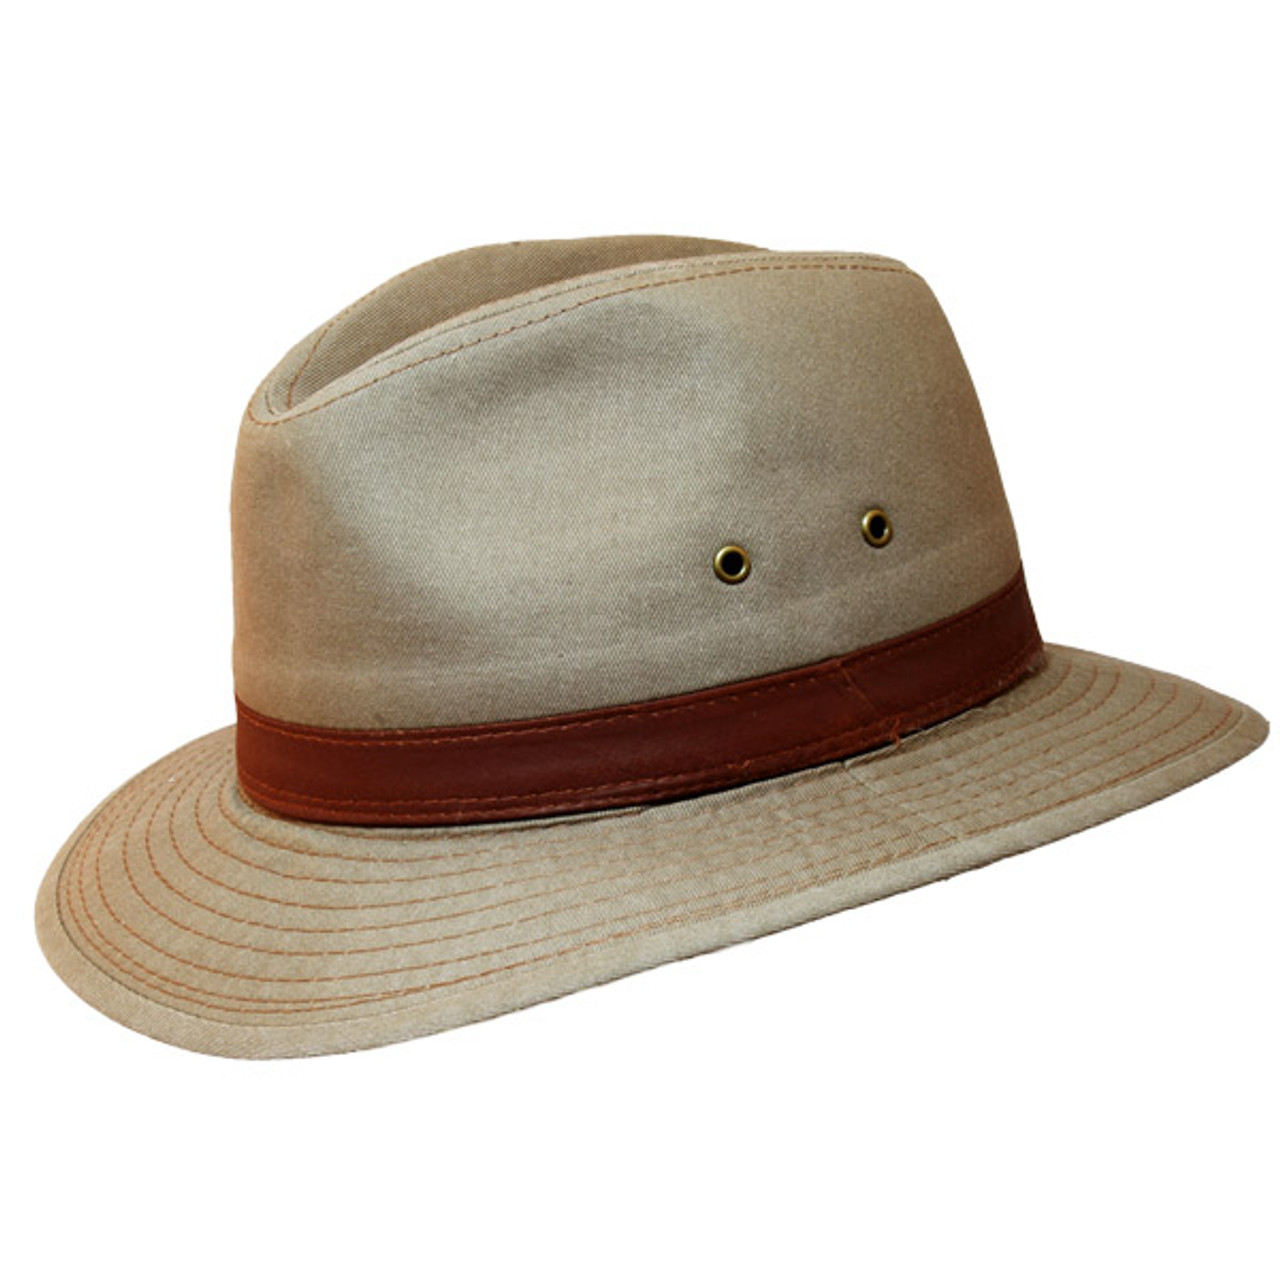 Dorfman Pacific Womens Beautiful Safari Hat One Size UPF 50